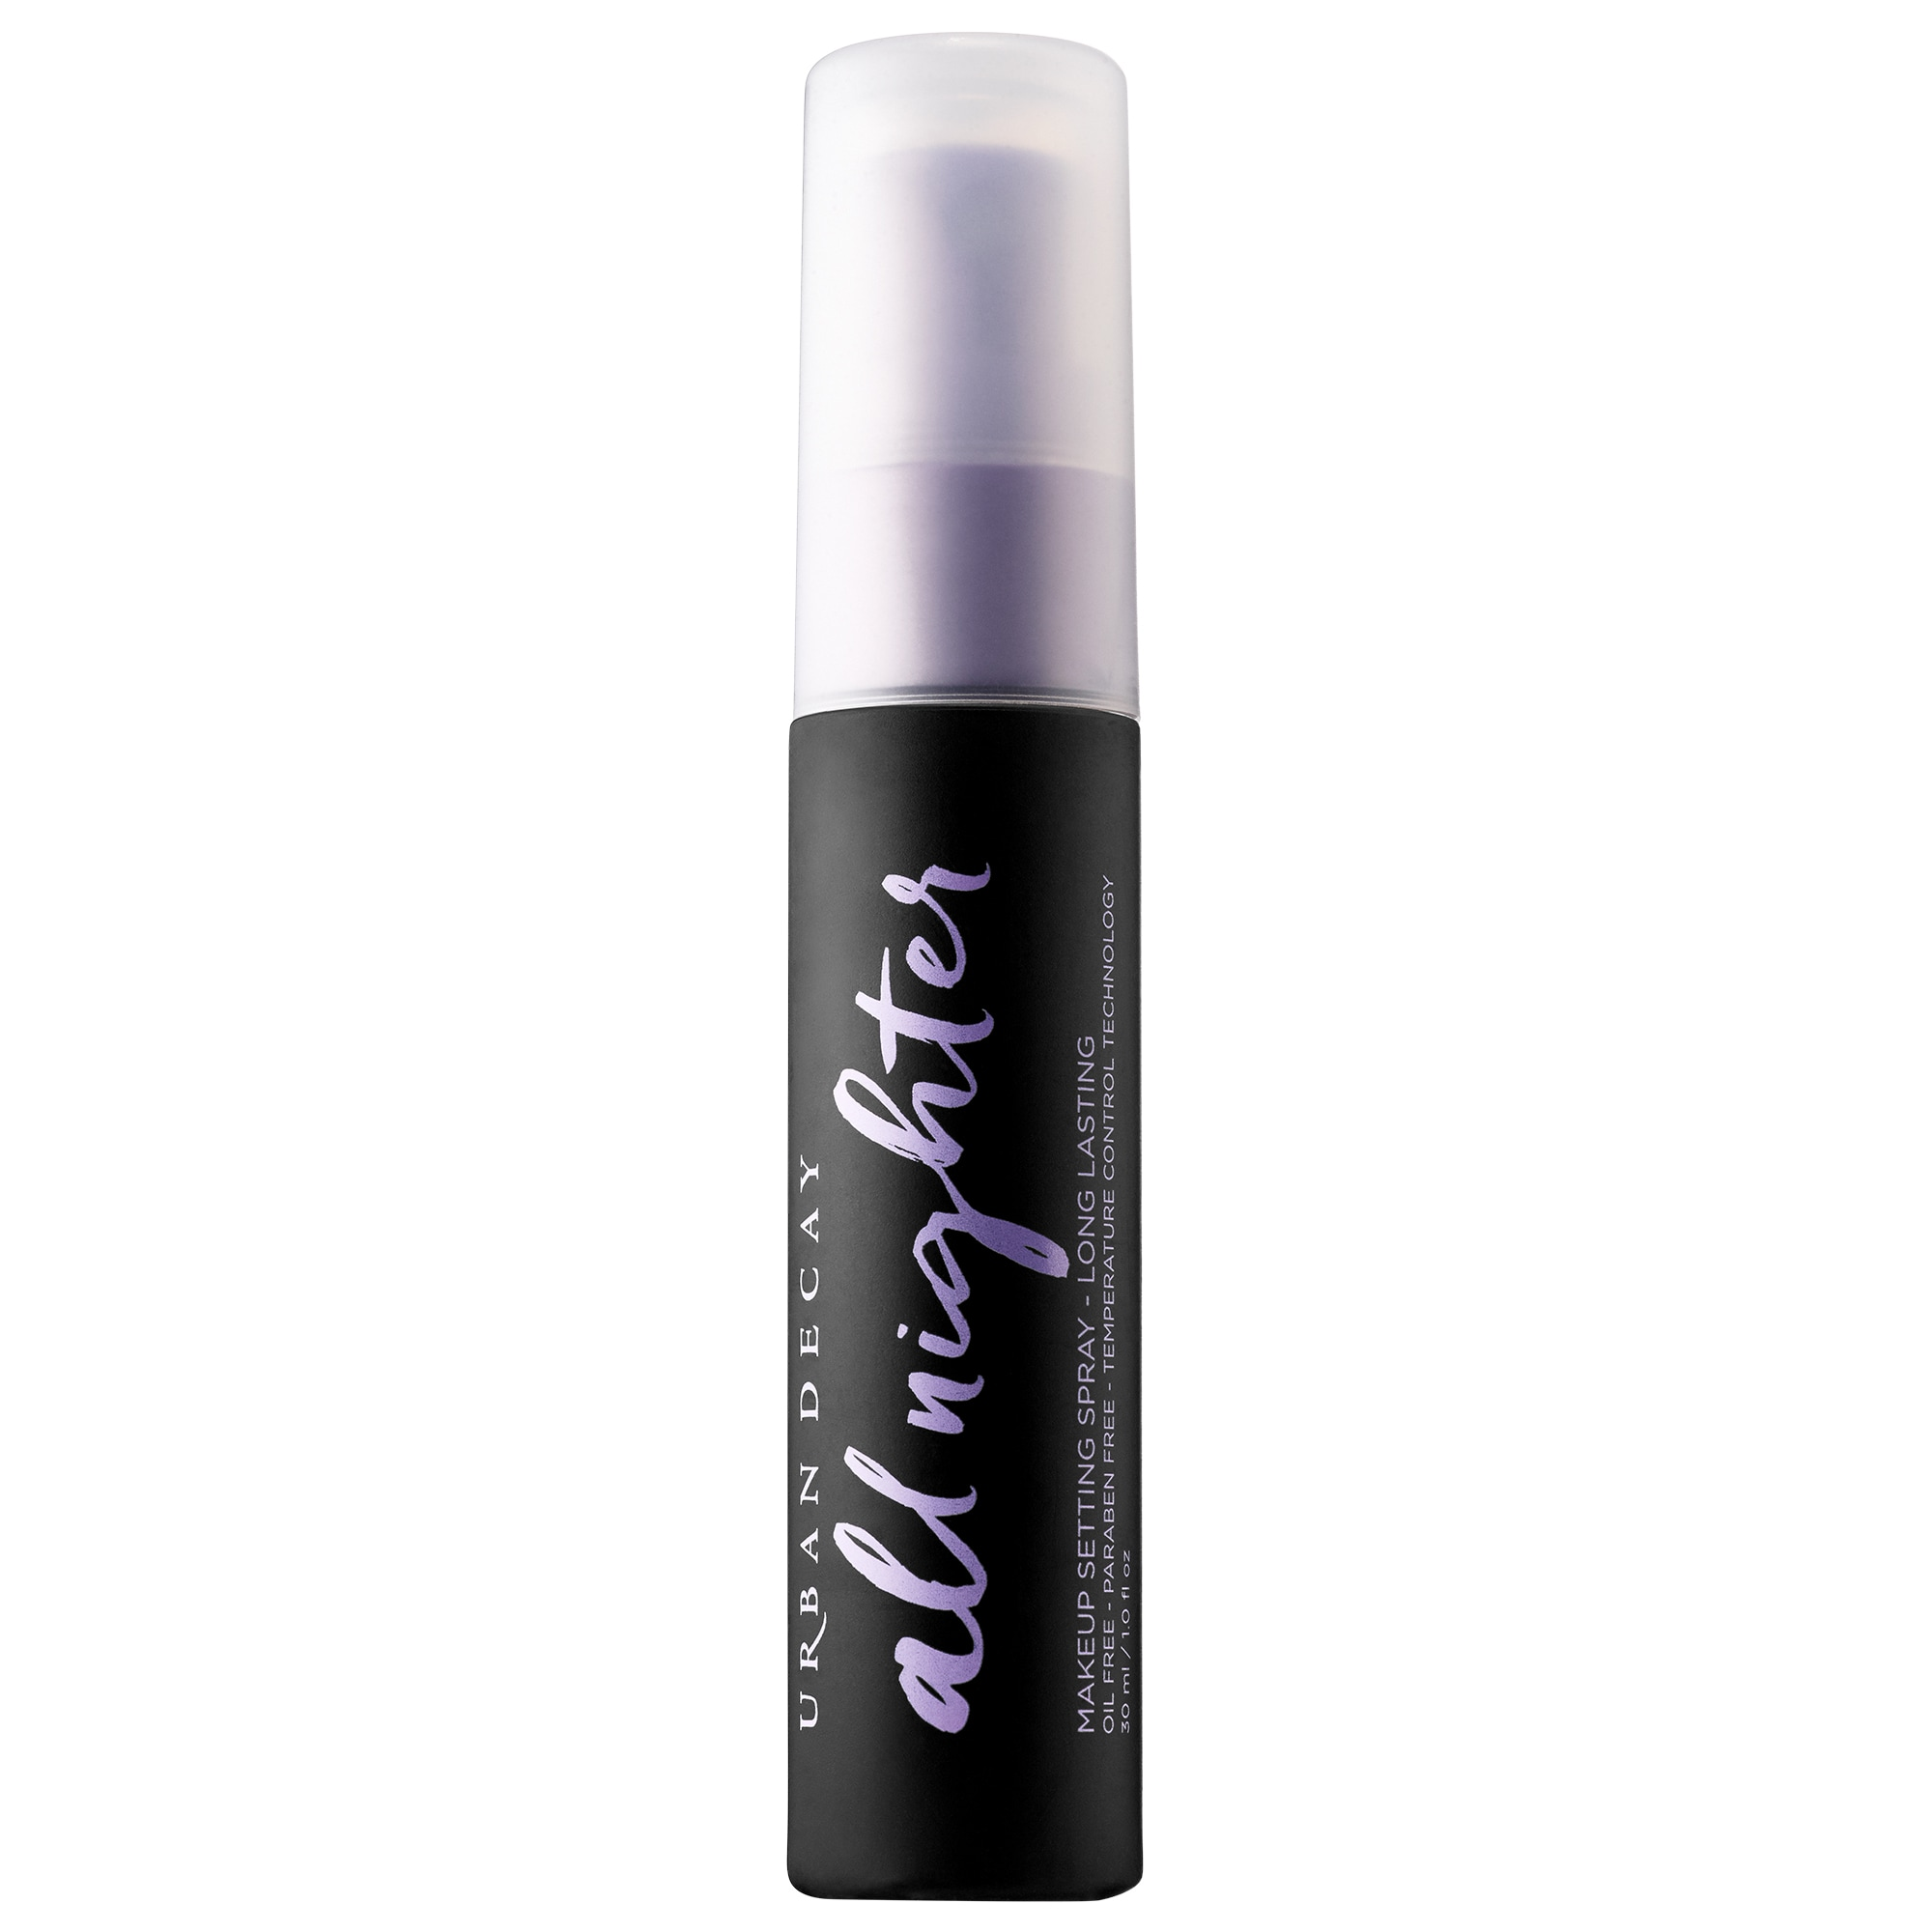 Urban Decay - All Nighter Long-Lasting Makeup Setting Spray